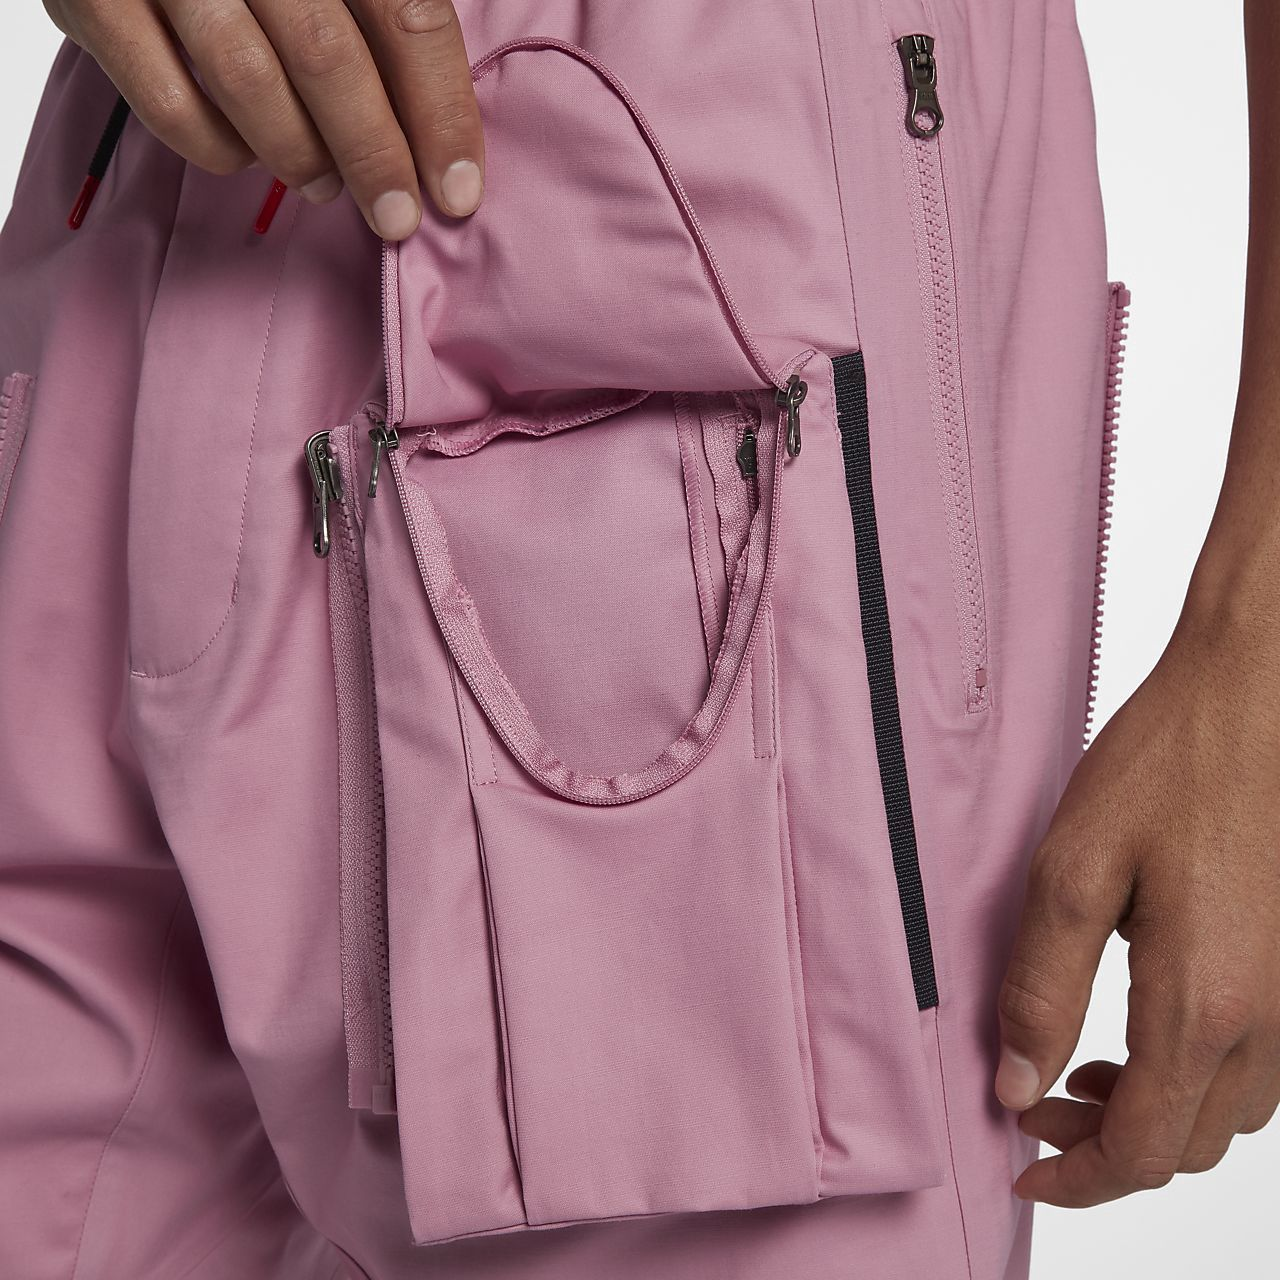 49d20e206e Nike Lab Acg Deploy Men's Cargo Shorts - S Pink | Products | Shorts ...